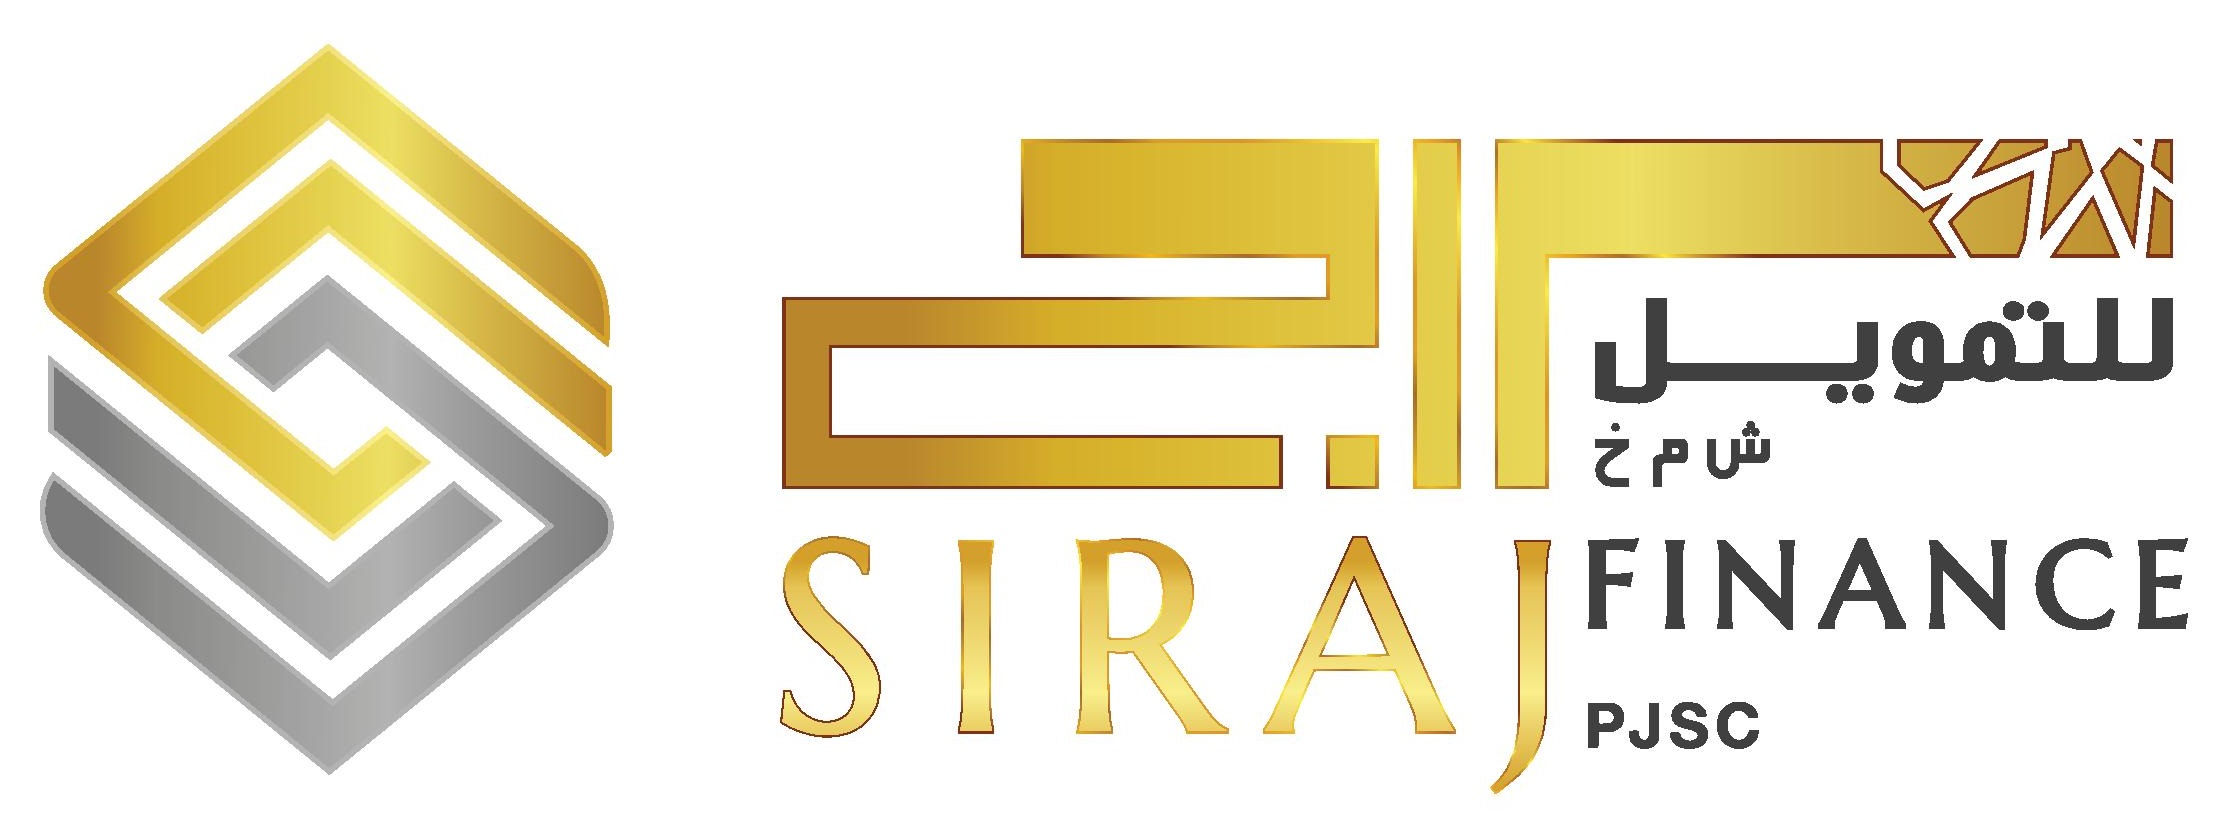 SirajFinance